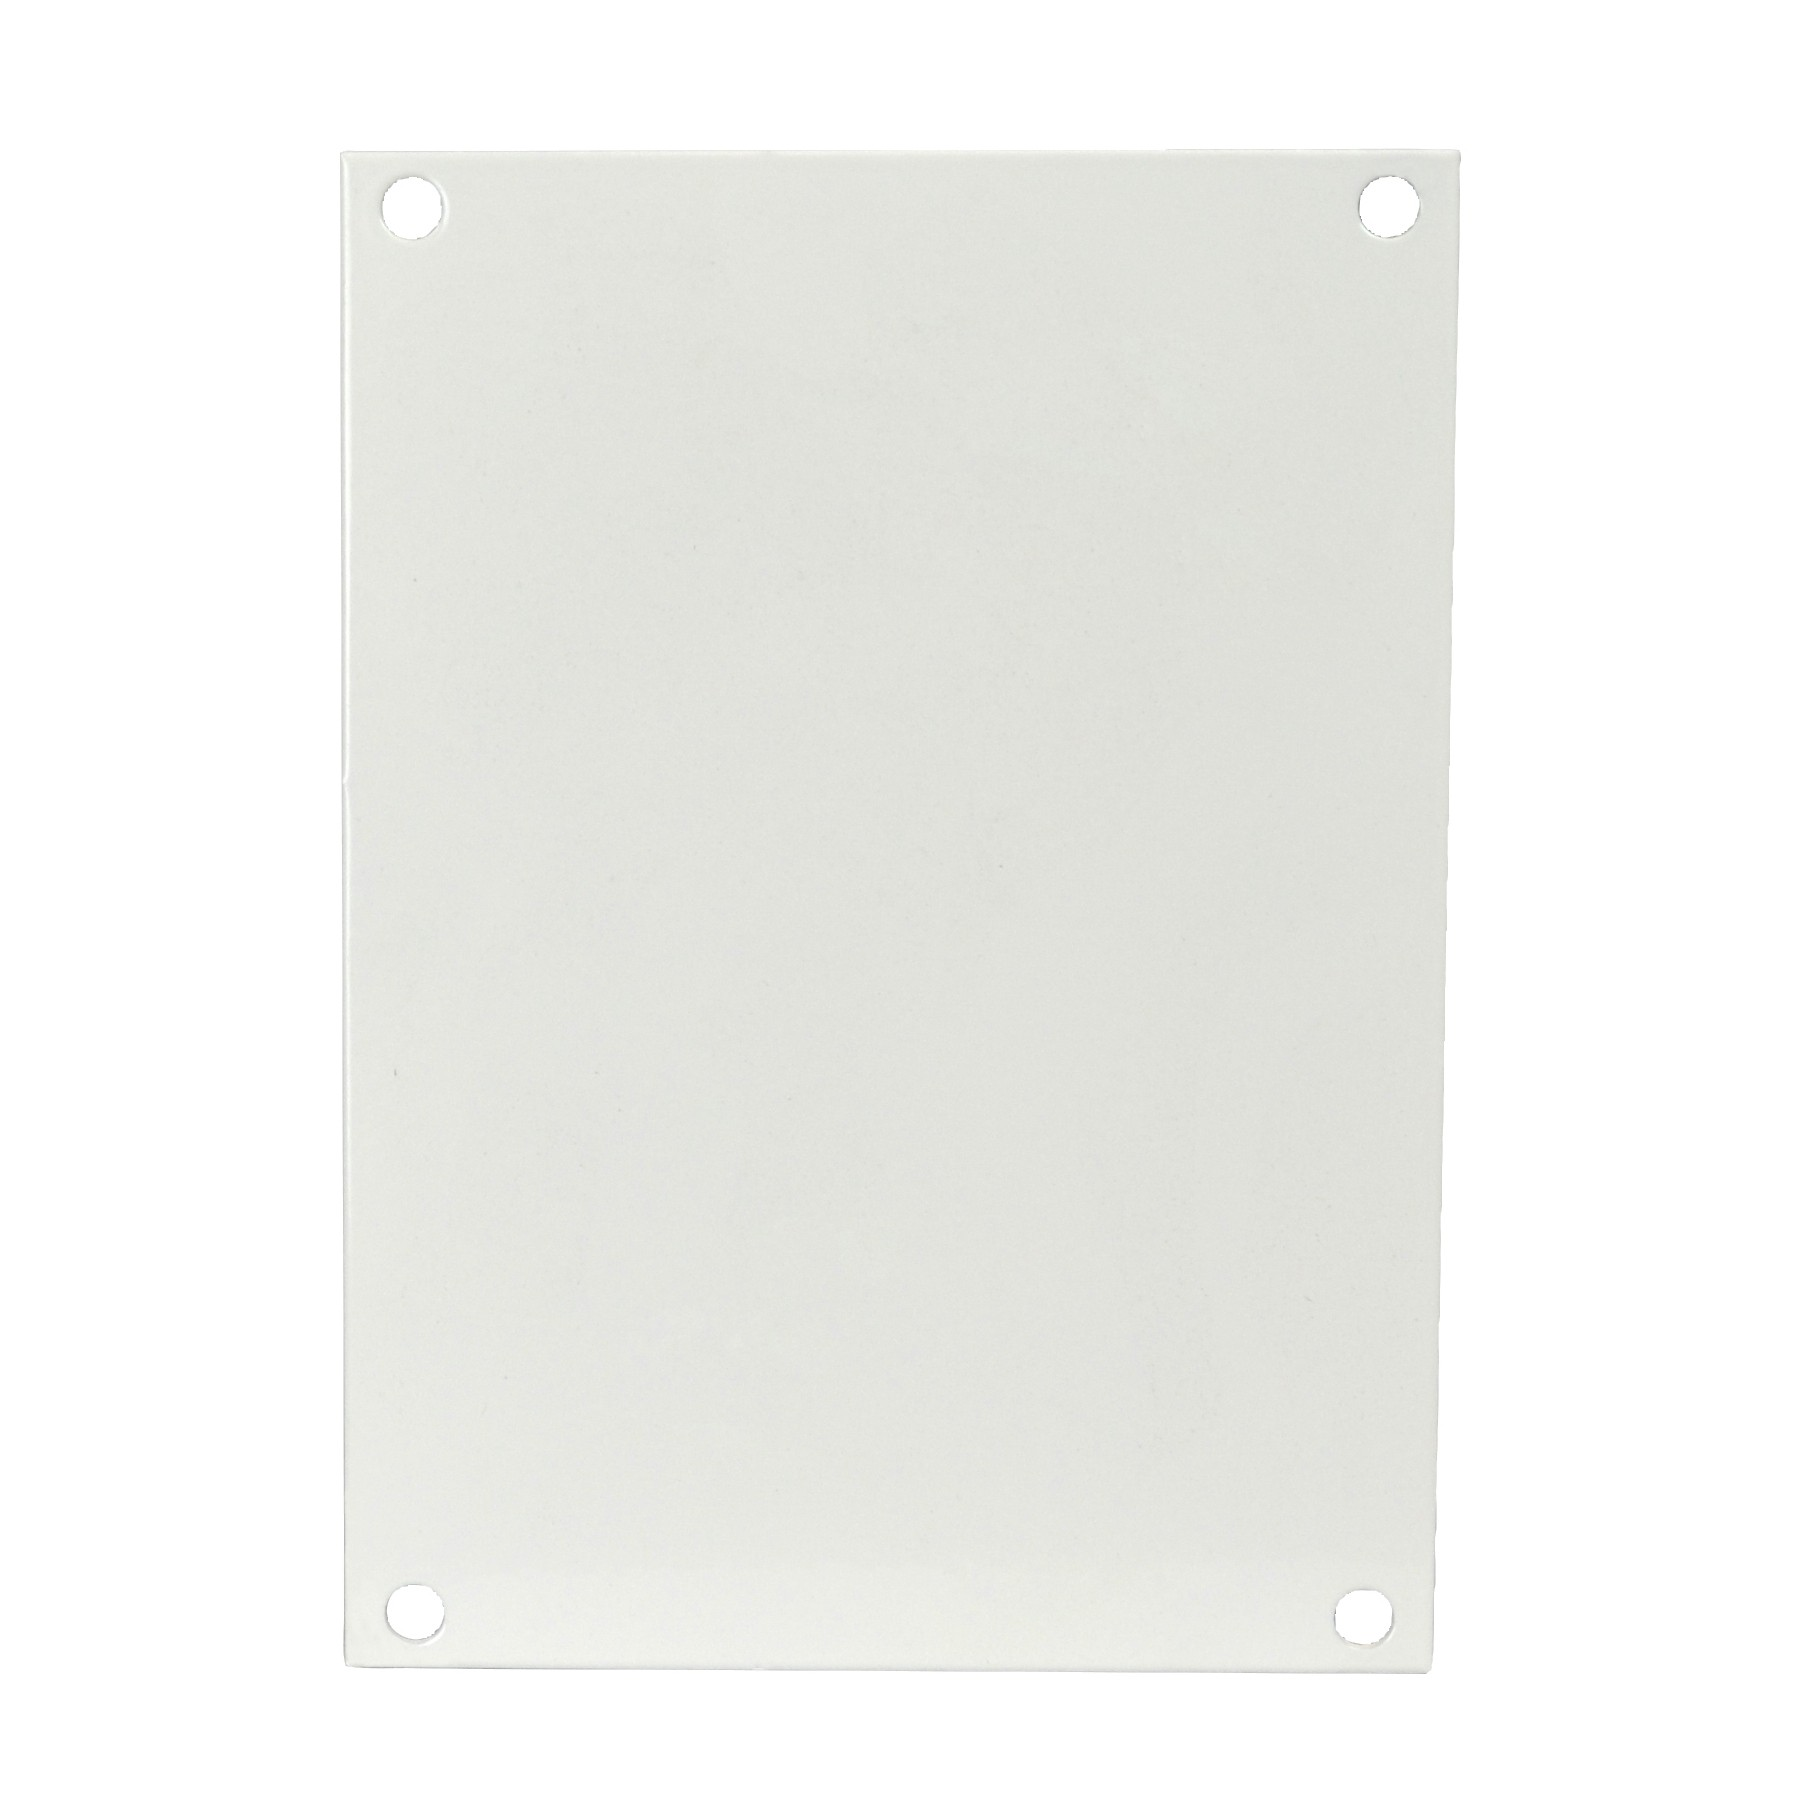 "Carbon Steel Back Panel for 16"" x 14"" Enclosures"